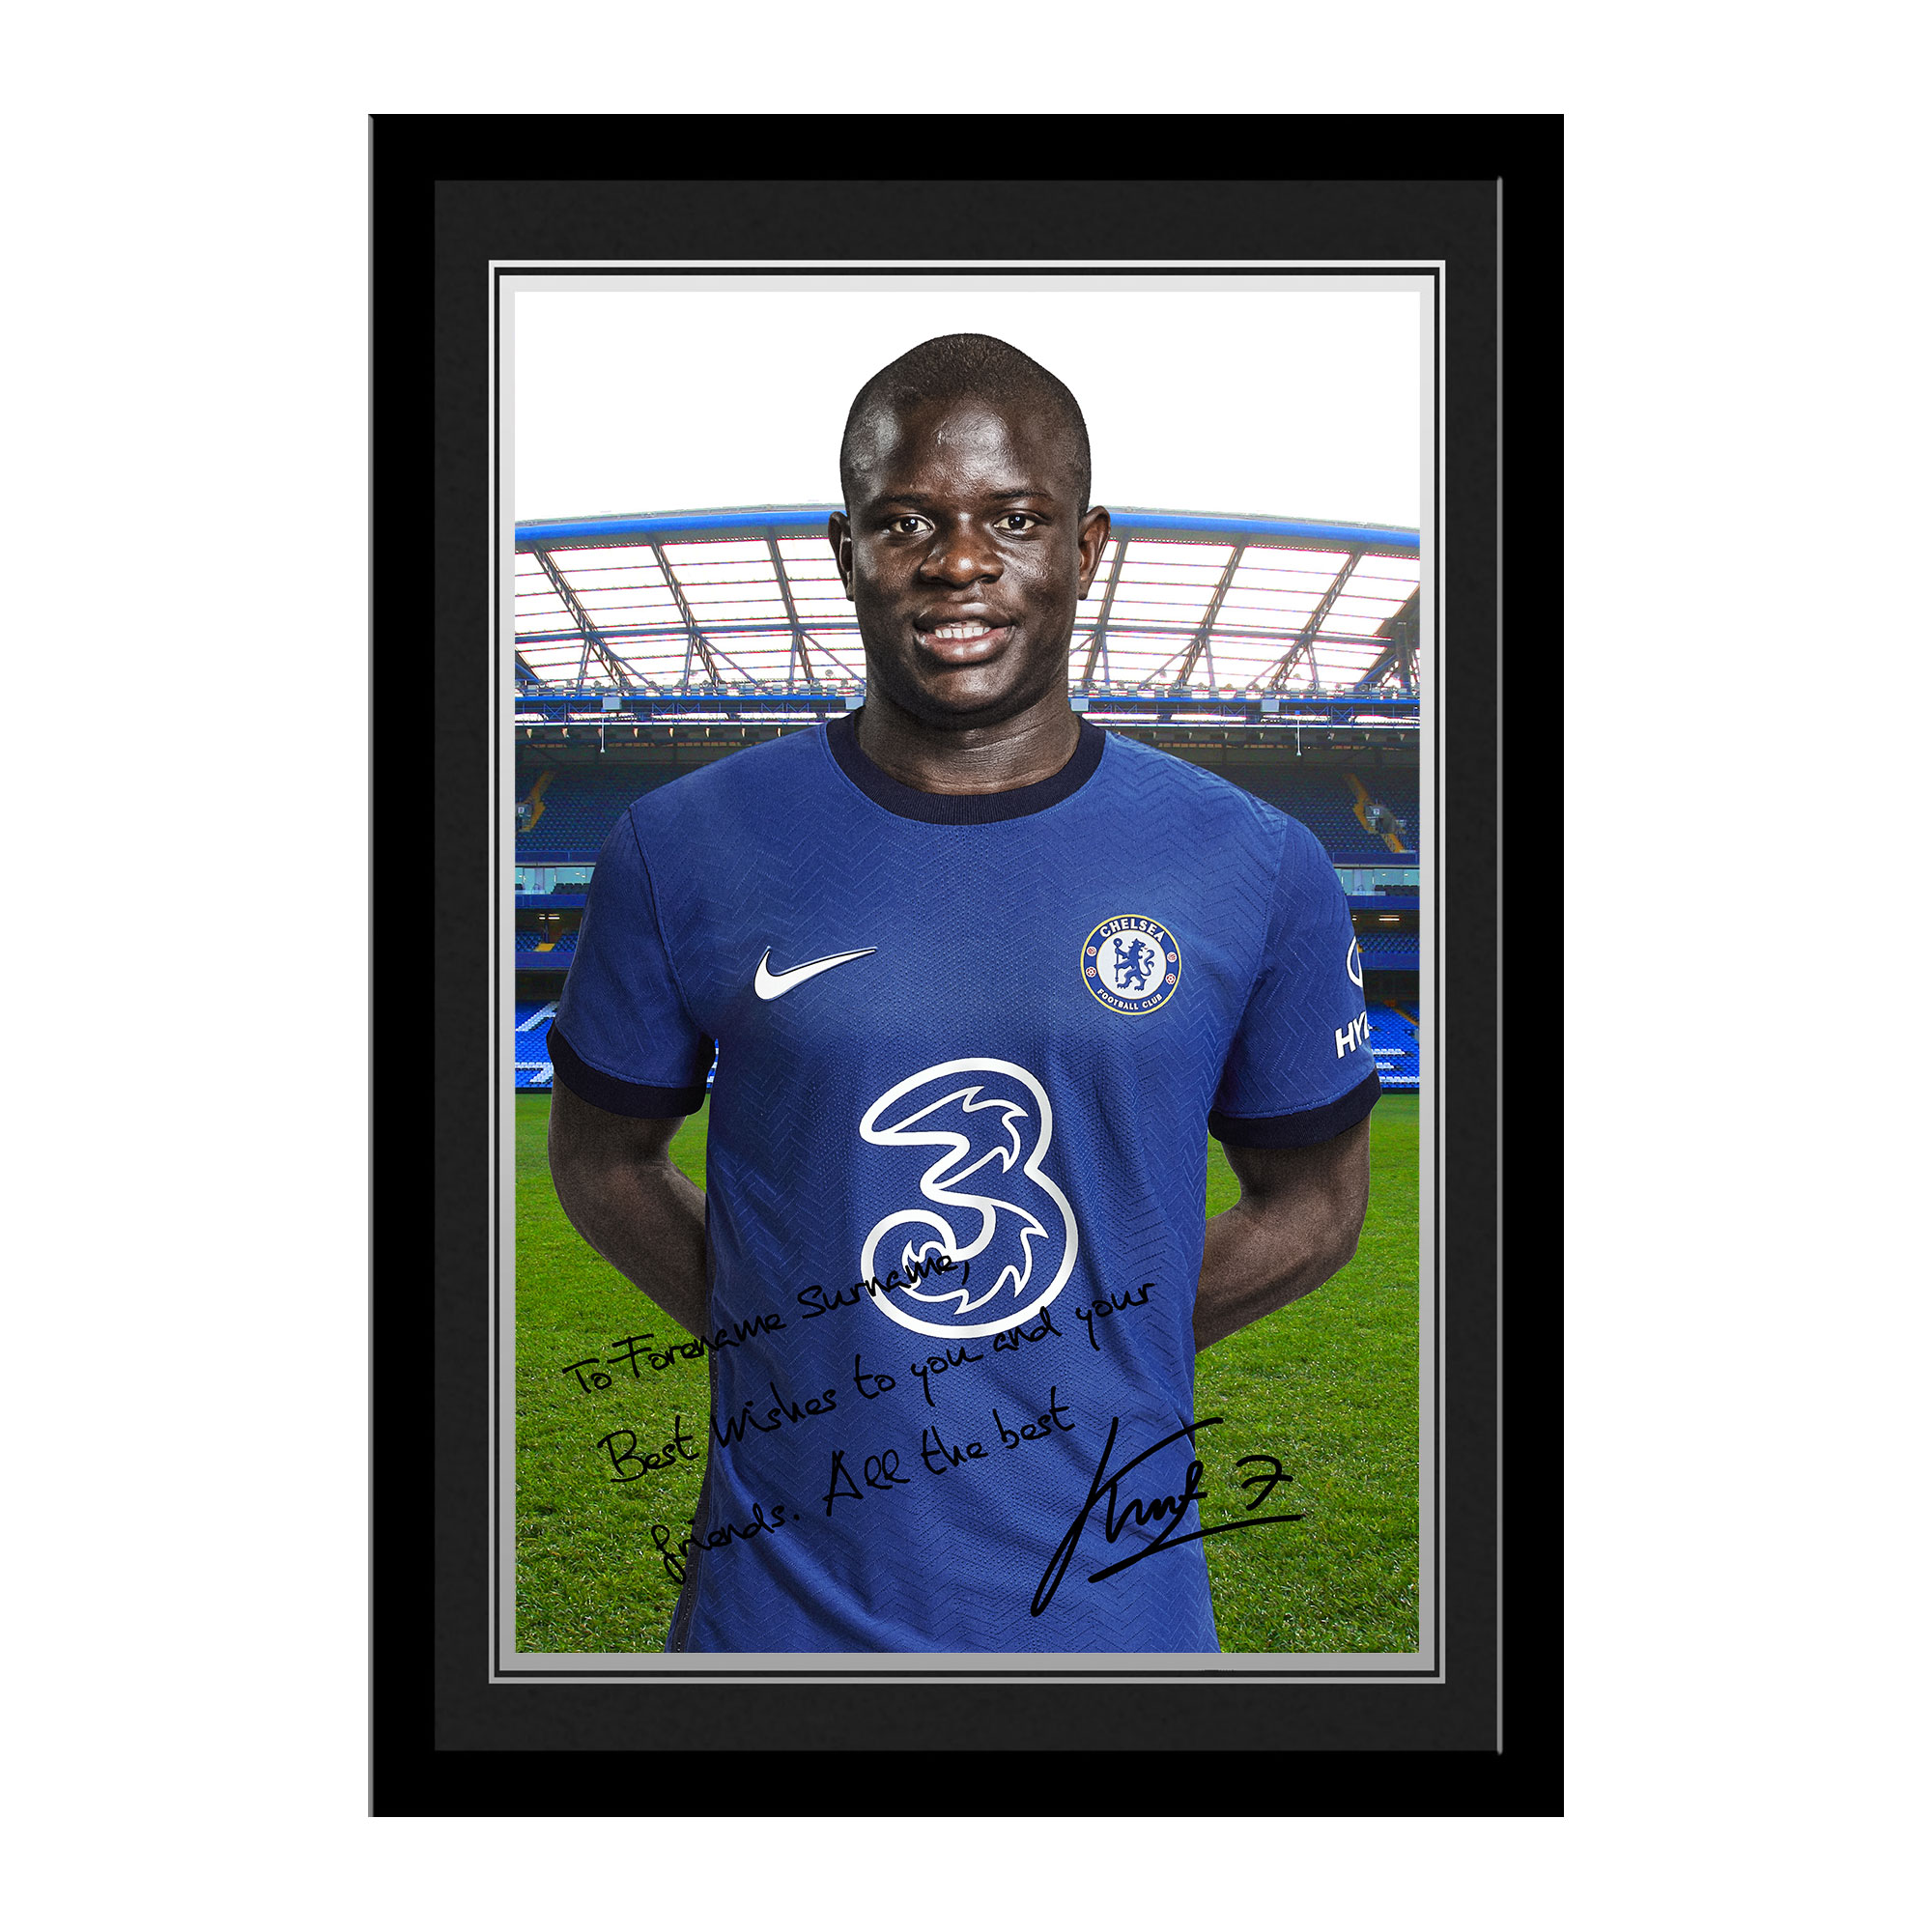 Chelsea FC Kante Autograph Photo Framed